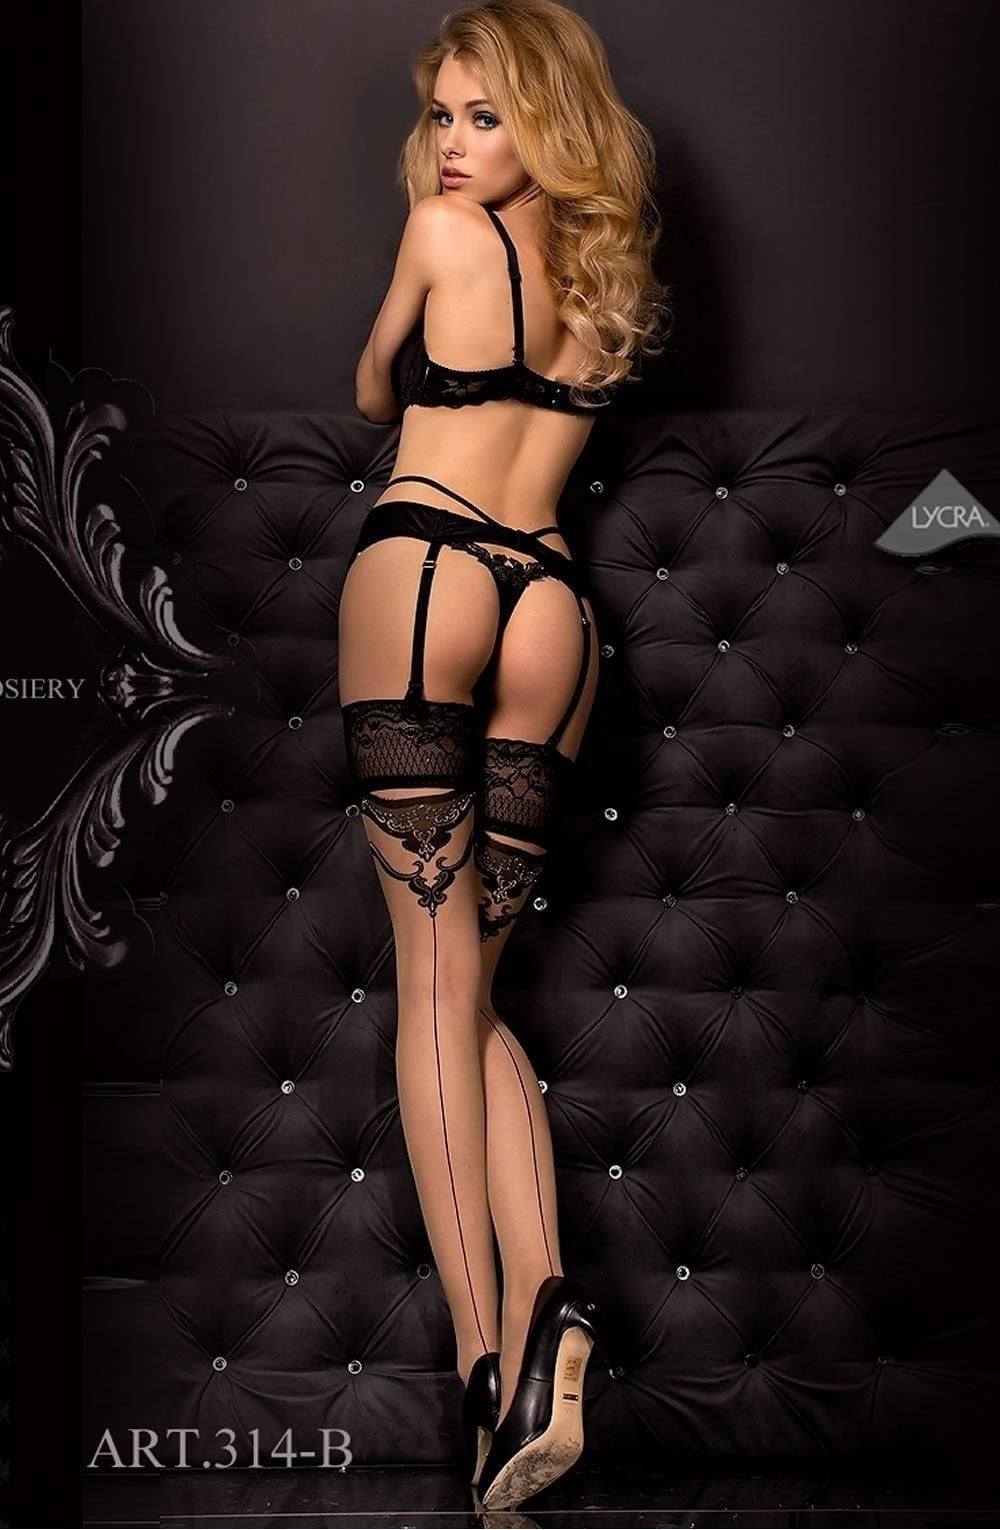 Ballerina Suspender Belt and String 315 (Black) - Suspender Belts - Ballerina - Charm and Lace Boutique